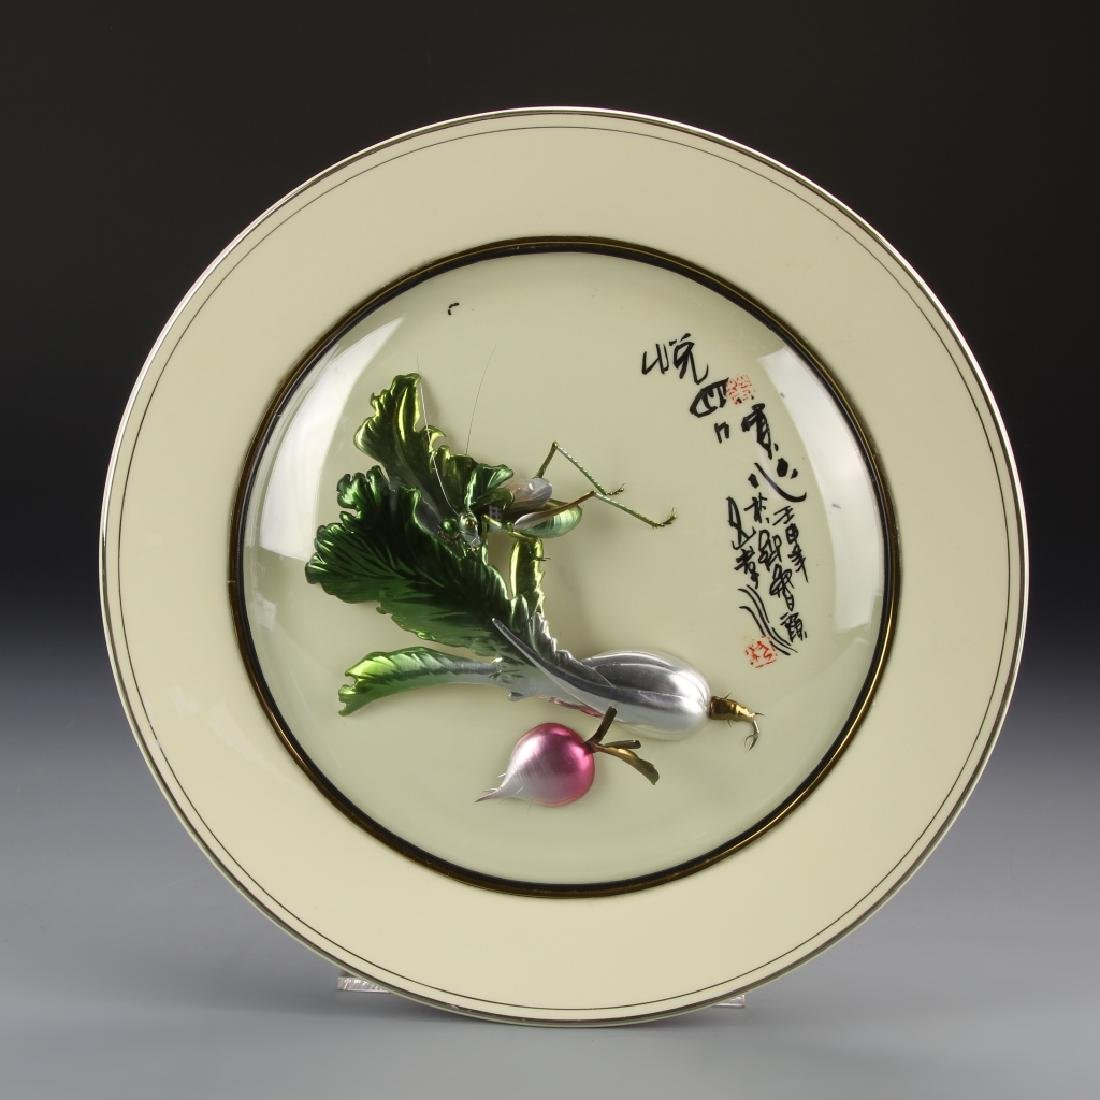 Chinese Decorative Porcelain Plate - 4